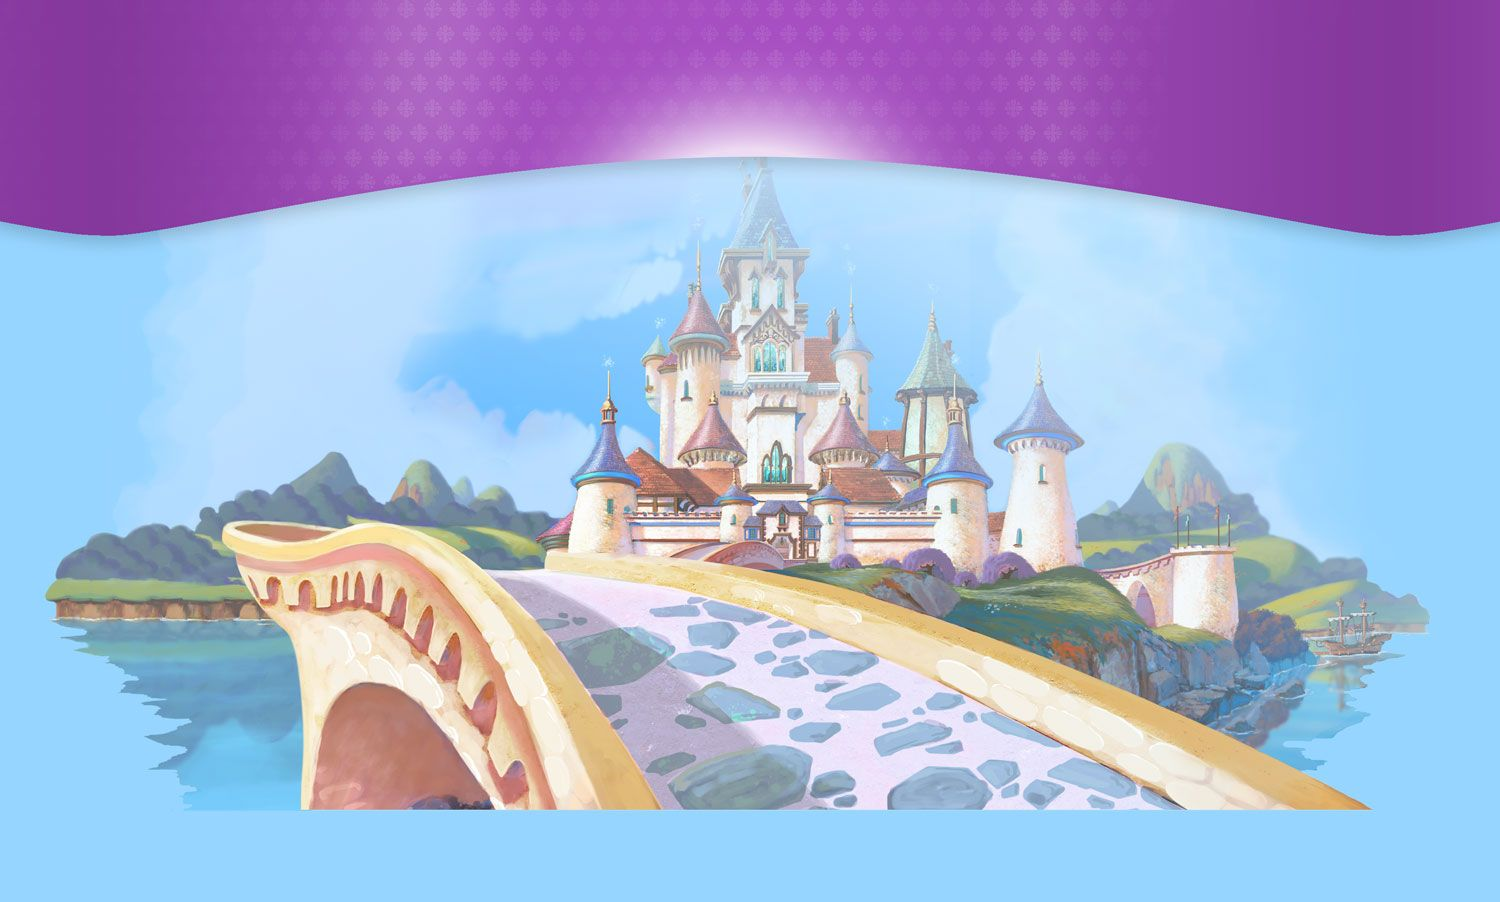 Sofia The First Castle Background Hd , HD Wallpaper & Backgrounds